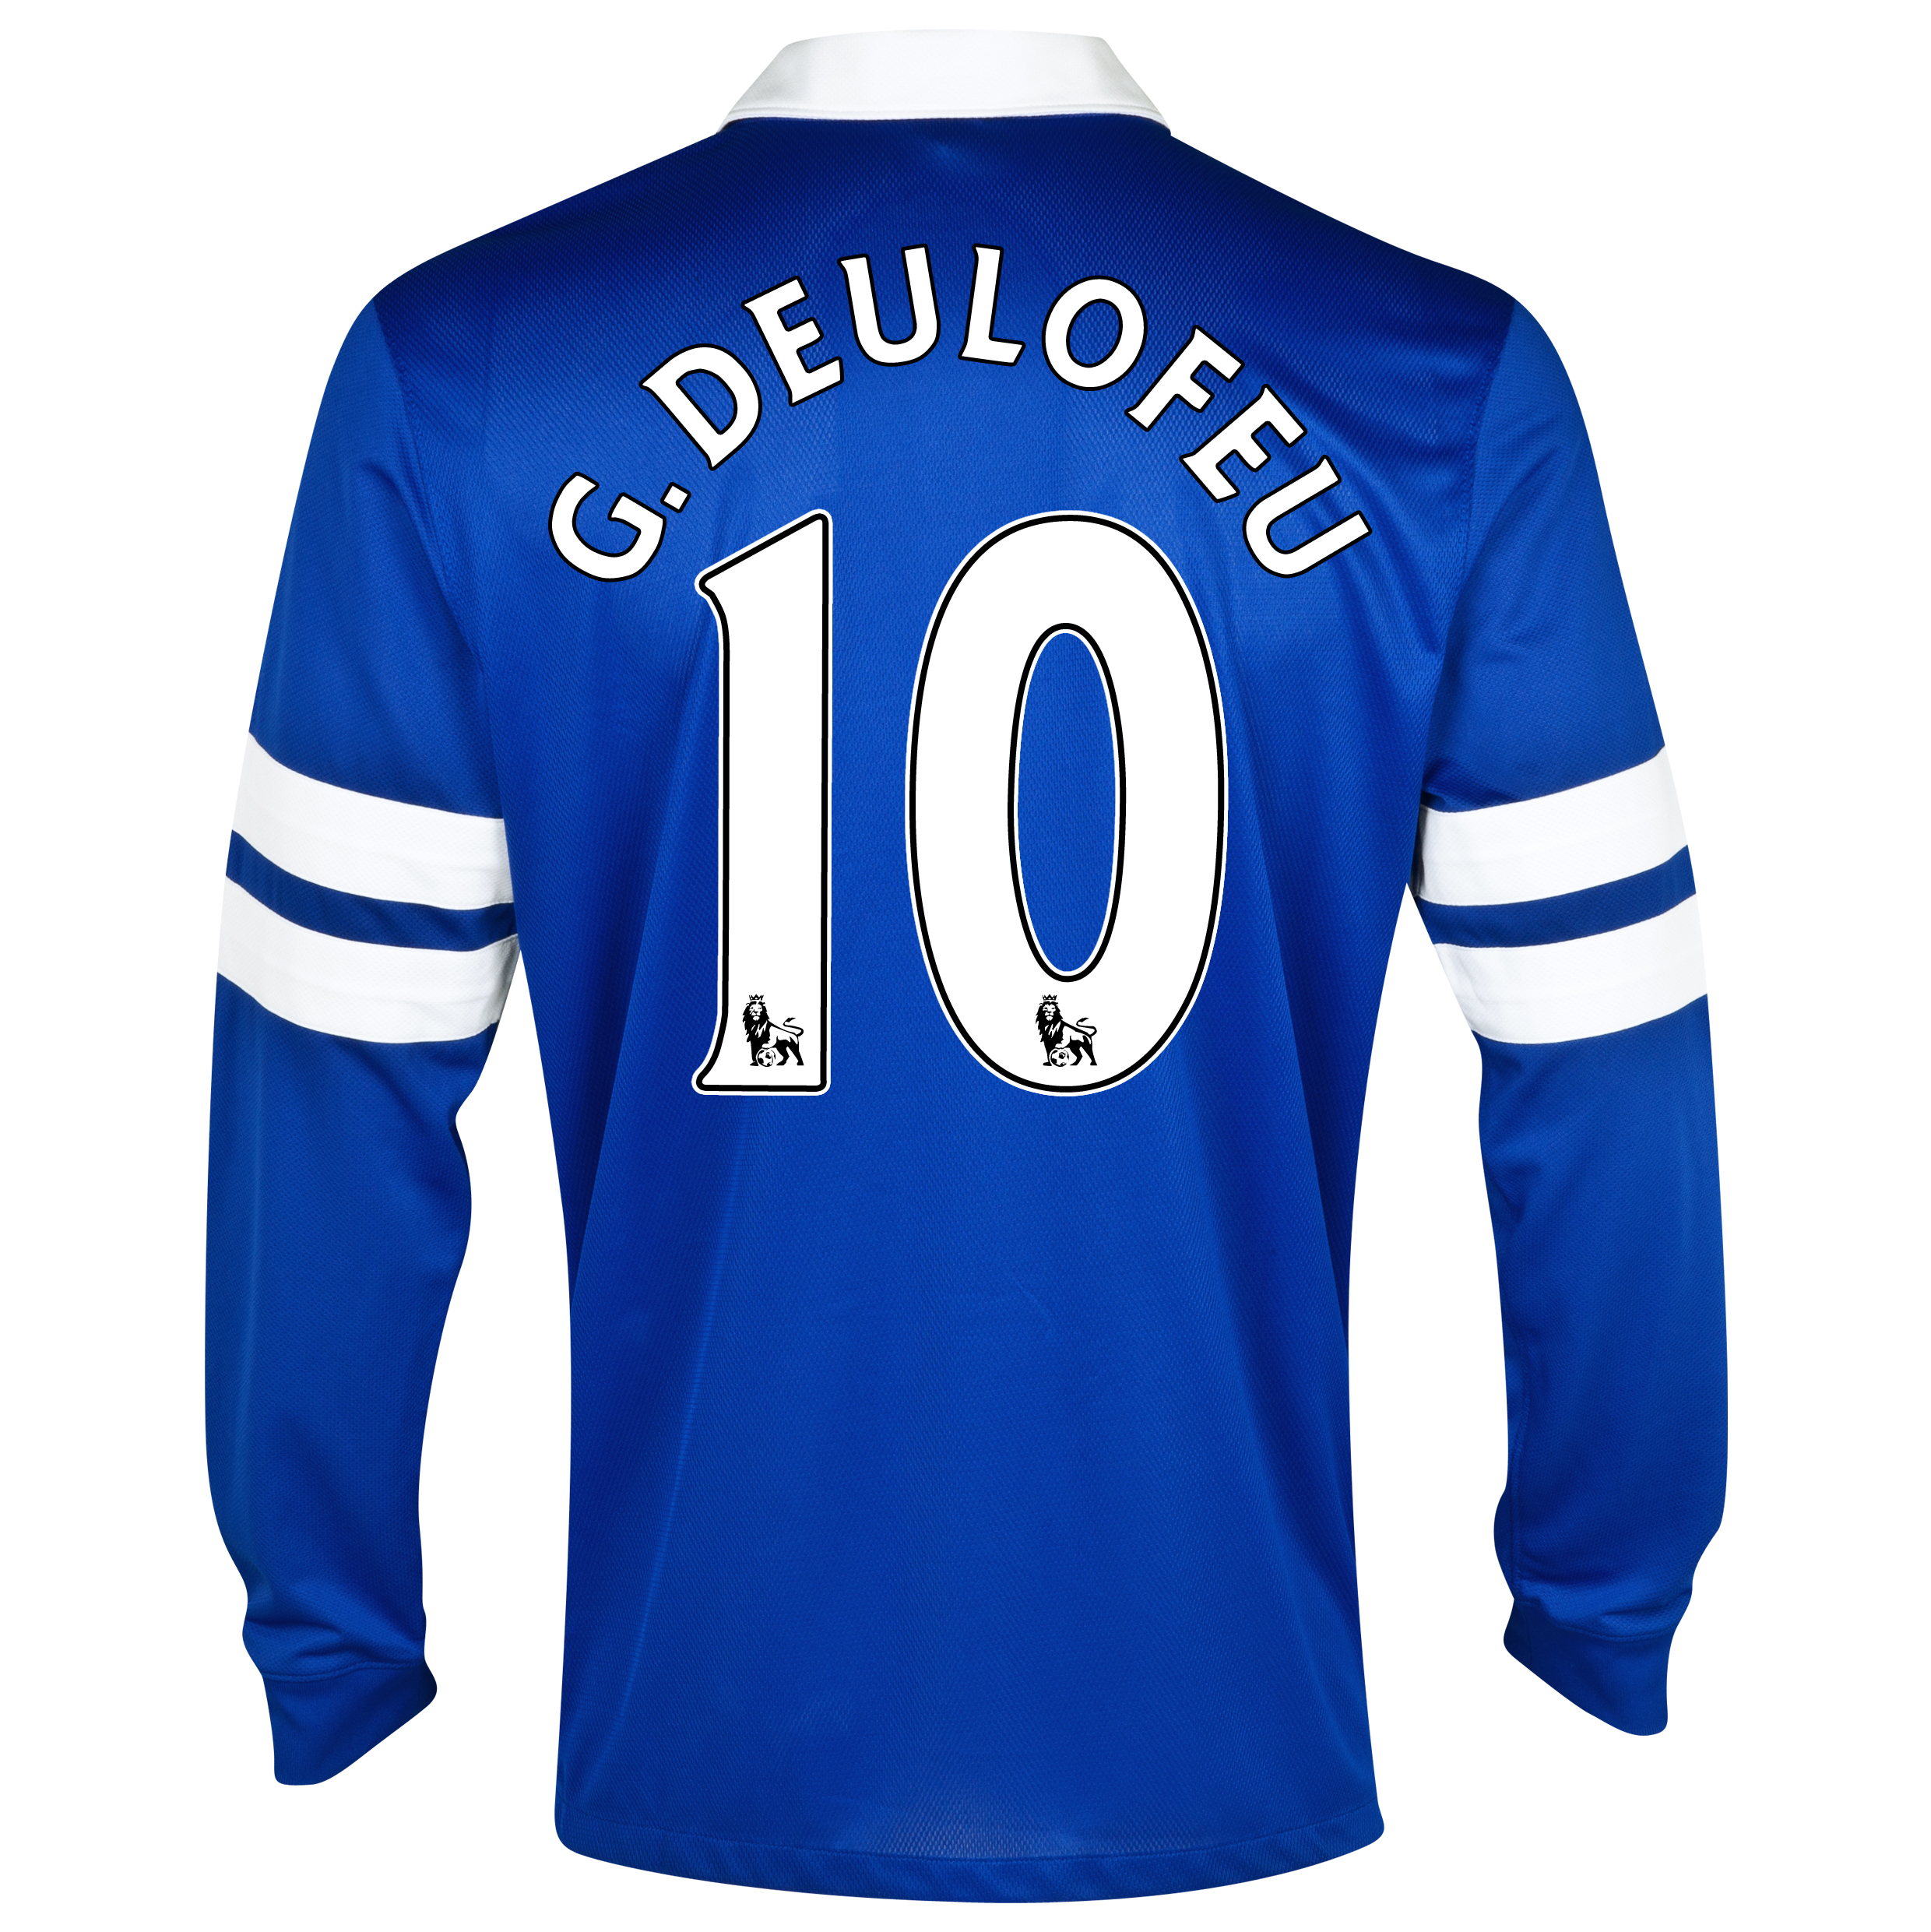 Everton Home Shirt 2013/14 - Long Sleeved Blue with G.Deulofeu 10 printing